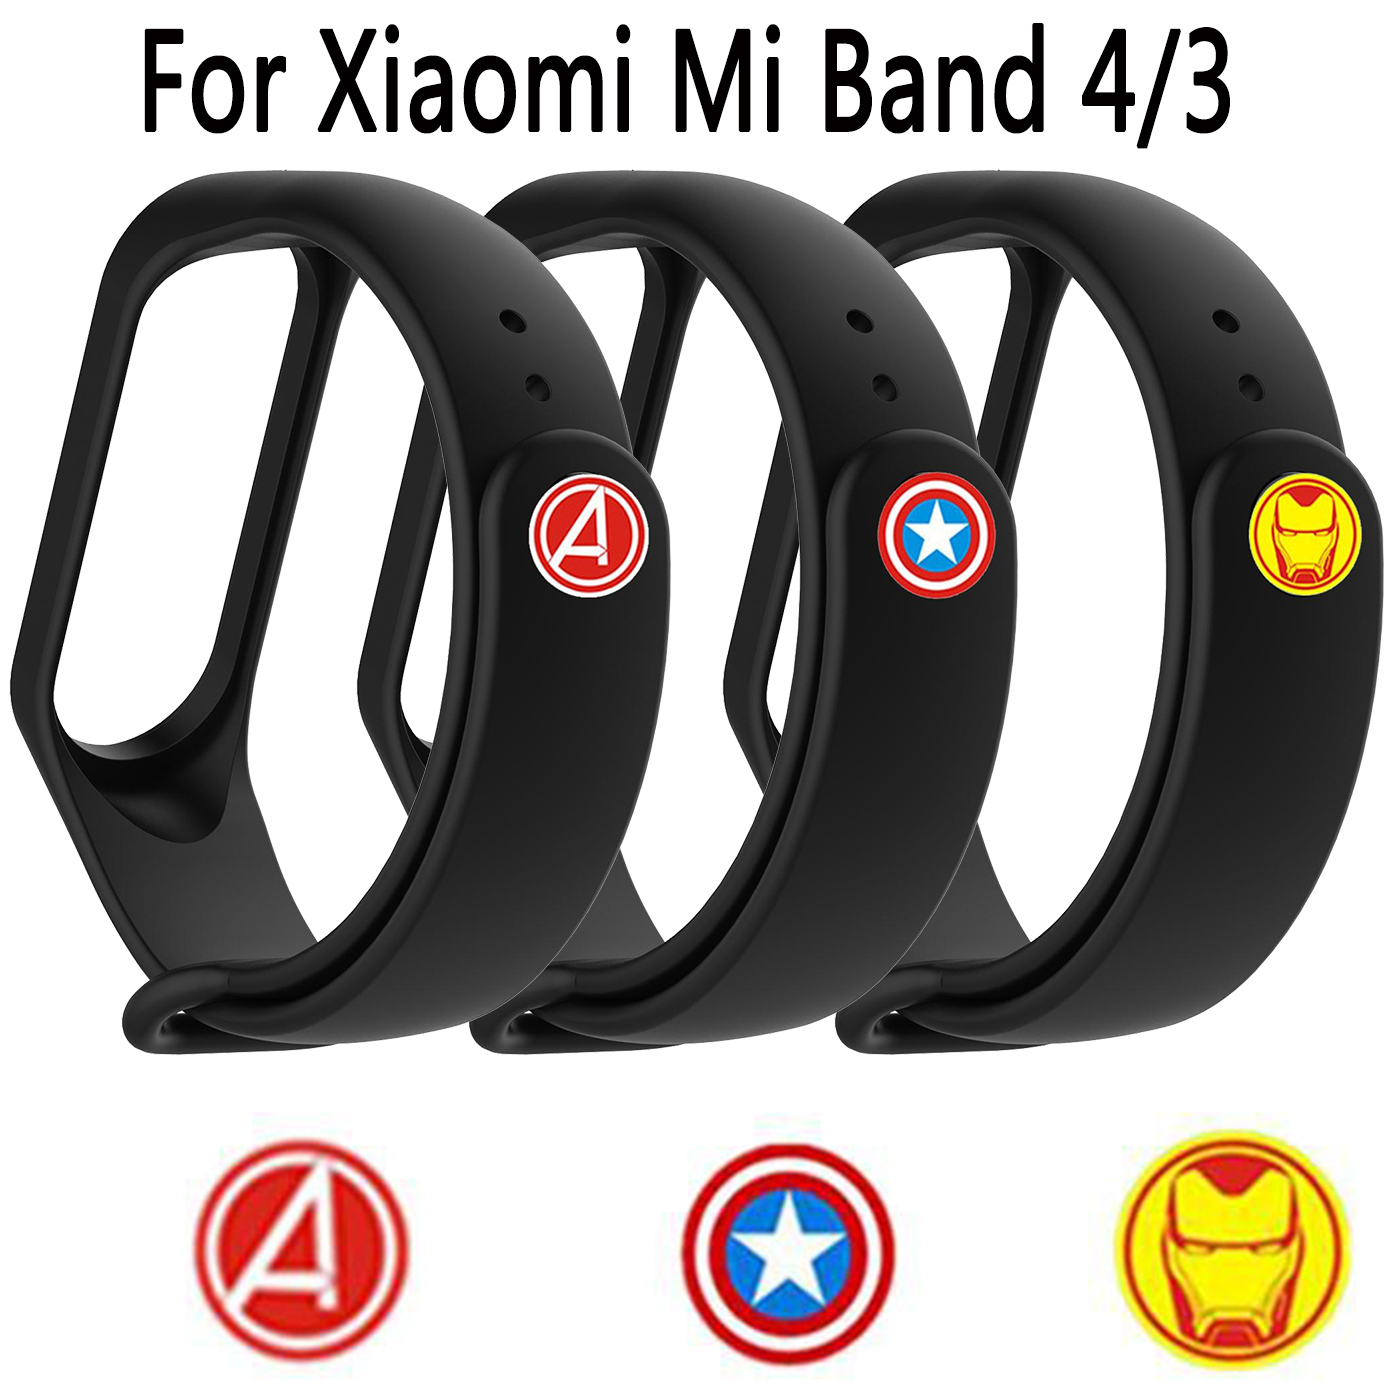 The <font><b>Avengers</b></font> Color Silicone Replacement Watch <font><b>Strap</b></font> For Xiaomi <font><b>Mi</b></font> <font><b>Band</b></font> <font><b>4</b></font> Wristband Accessories For Xiaomi <font><b>Mi</b></font> <font><b>Band</b></font> 3 Smart <font><b>Band</b></font> image